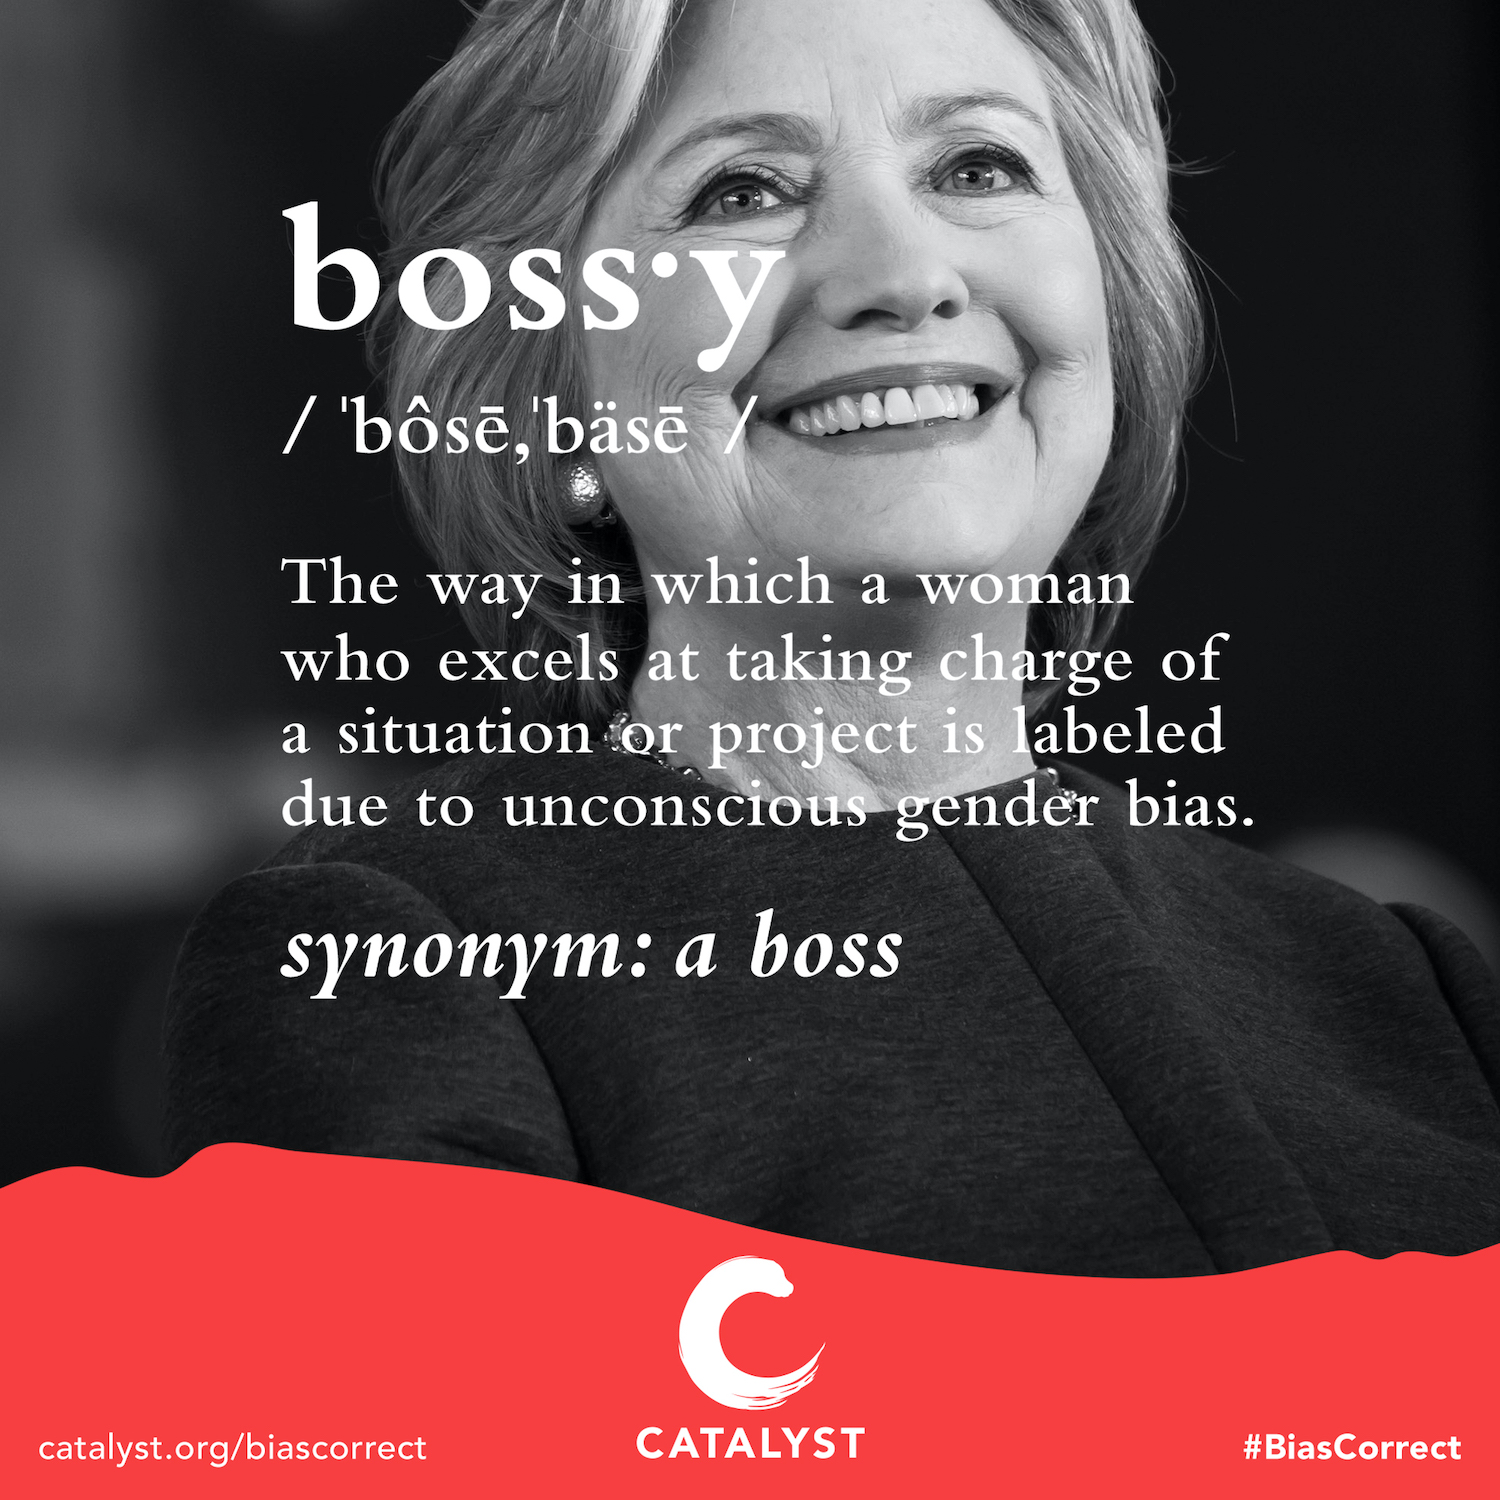 Hillary Clinton #BiasCorrect campaign to fight gender bias